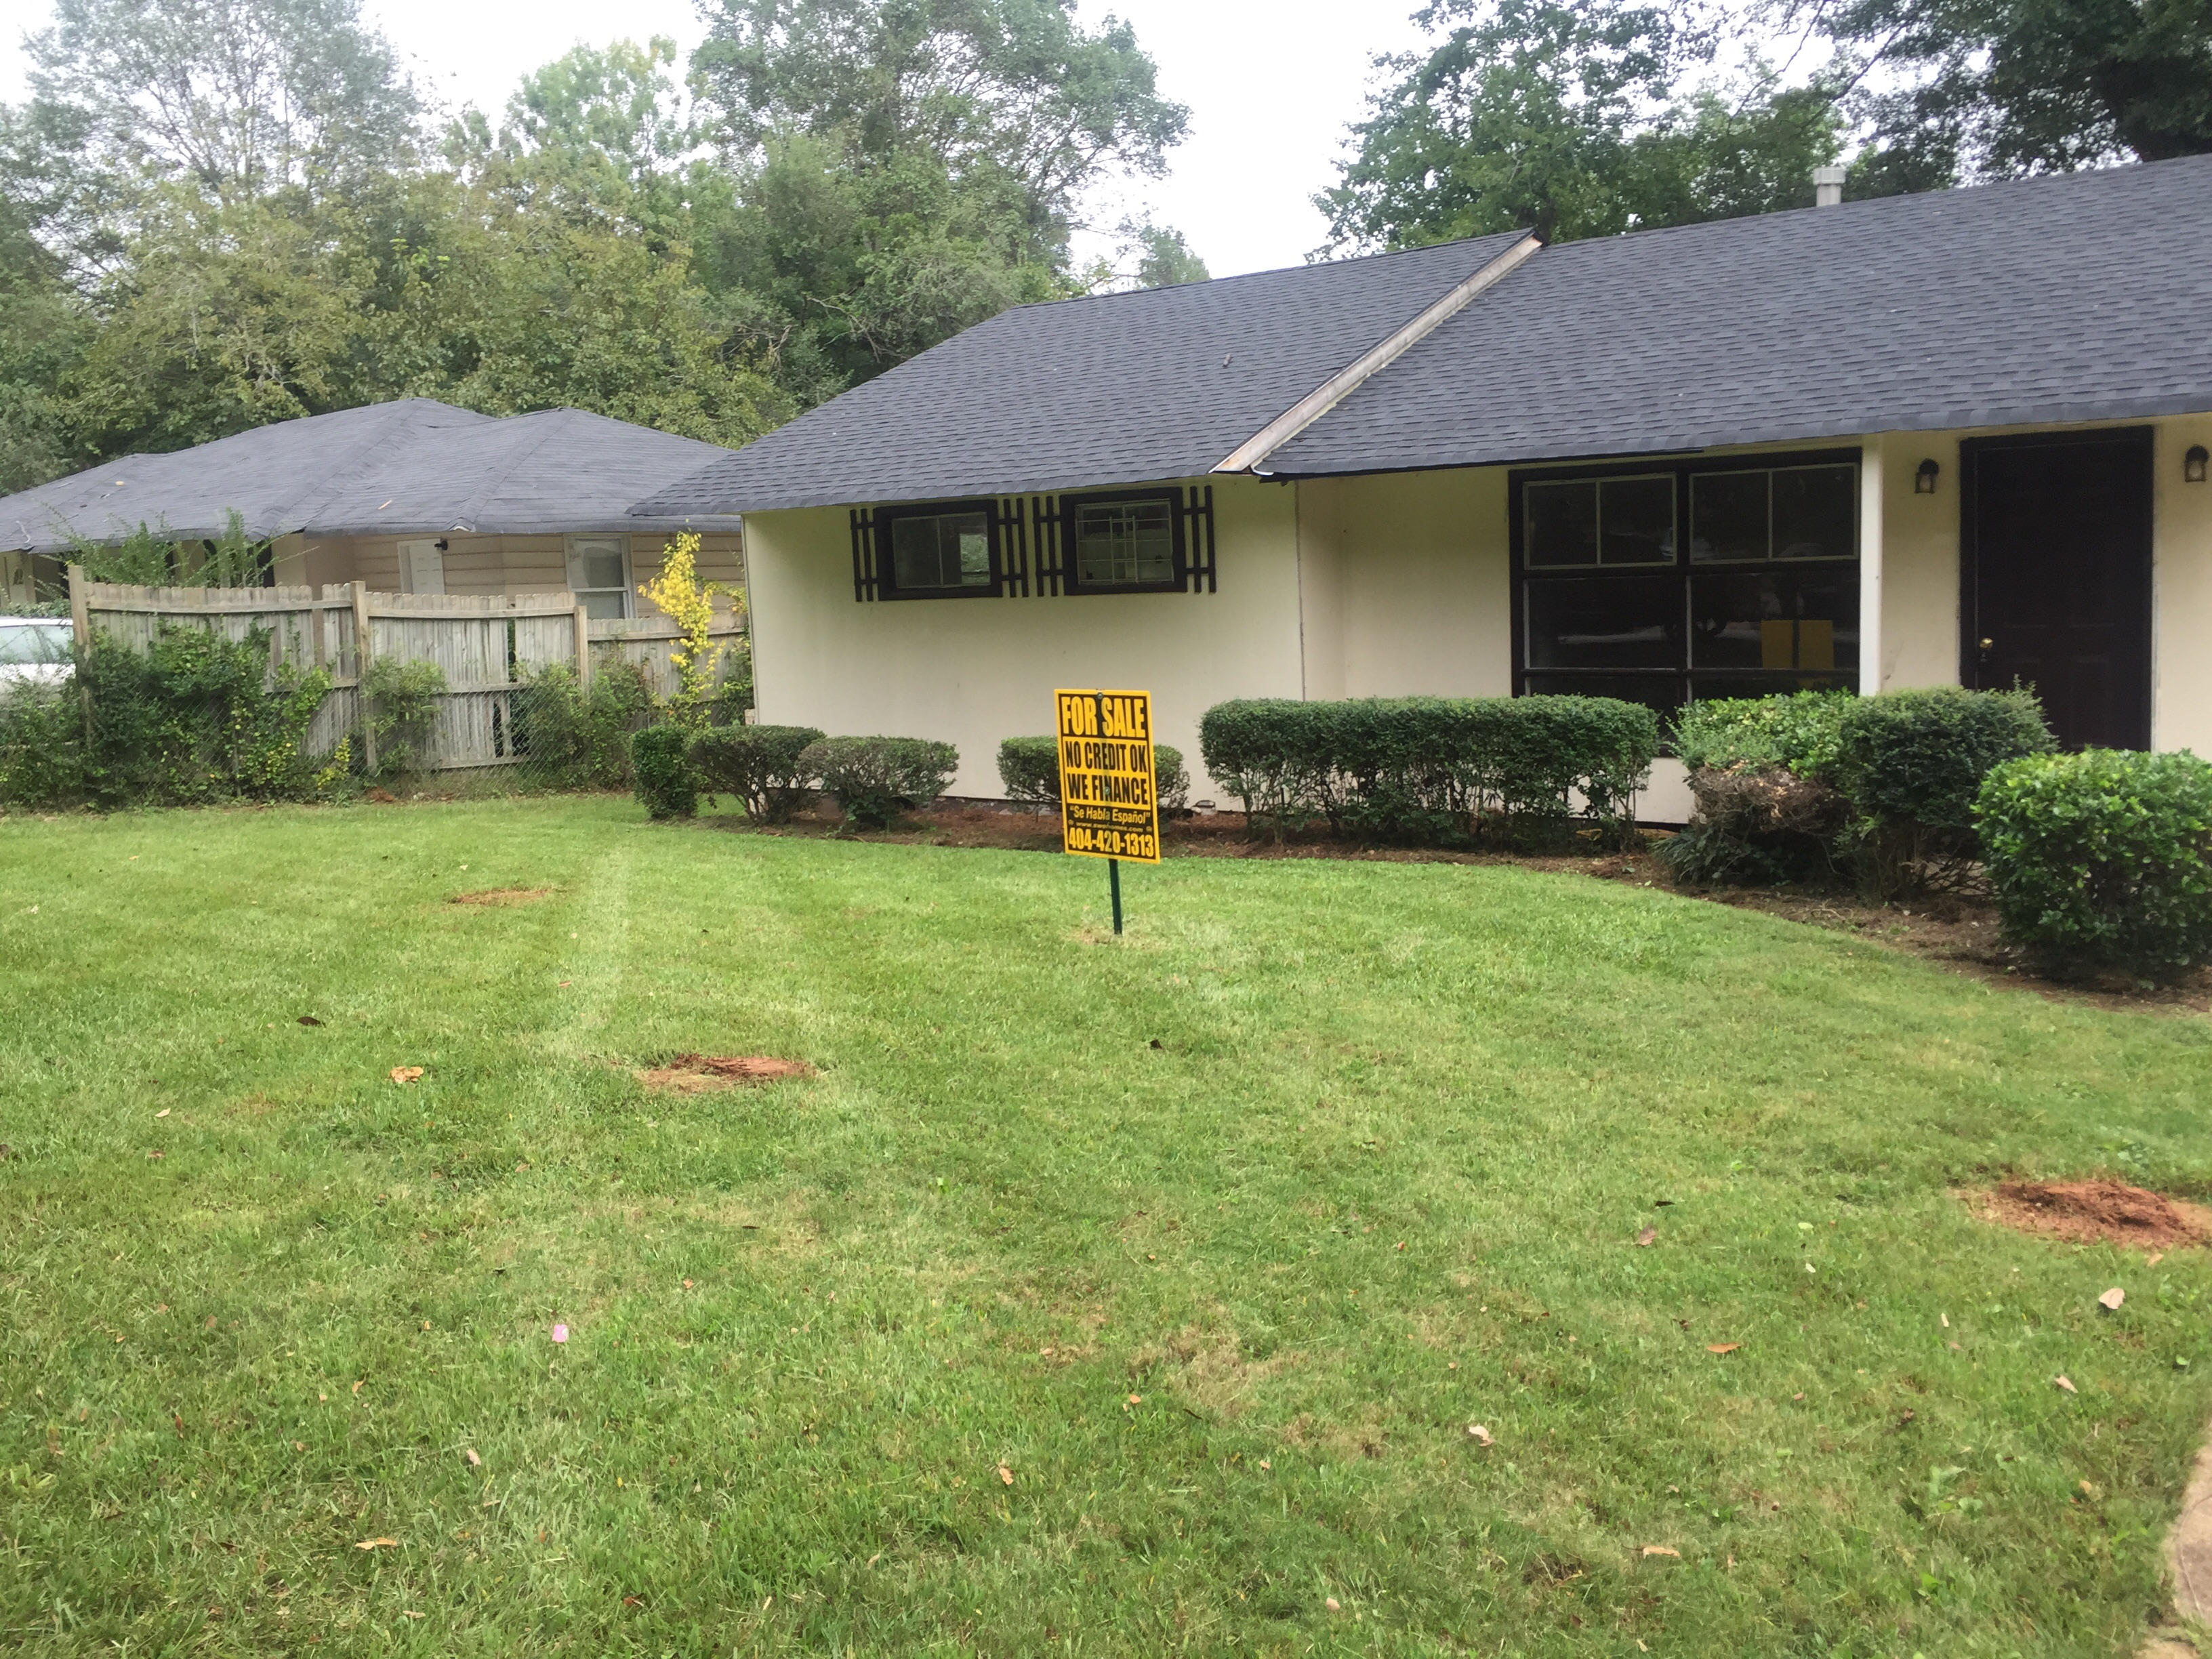 Yard mowing company in Lawrenceville, GA, 30043